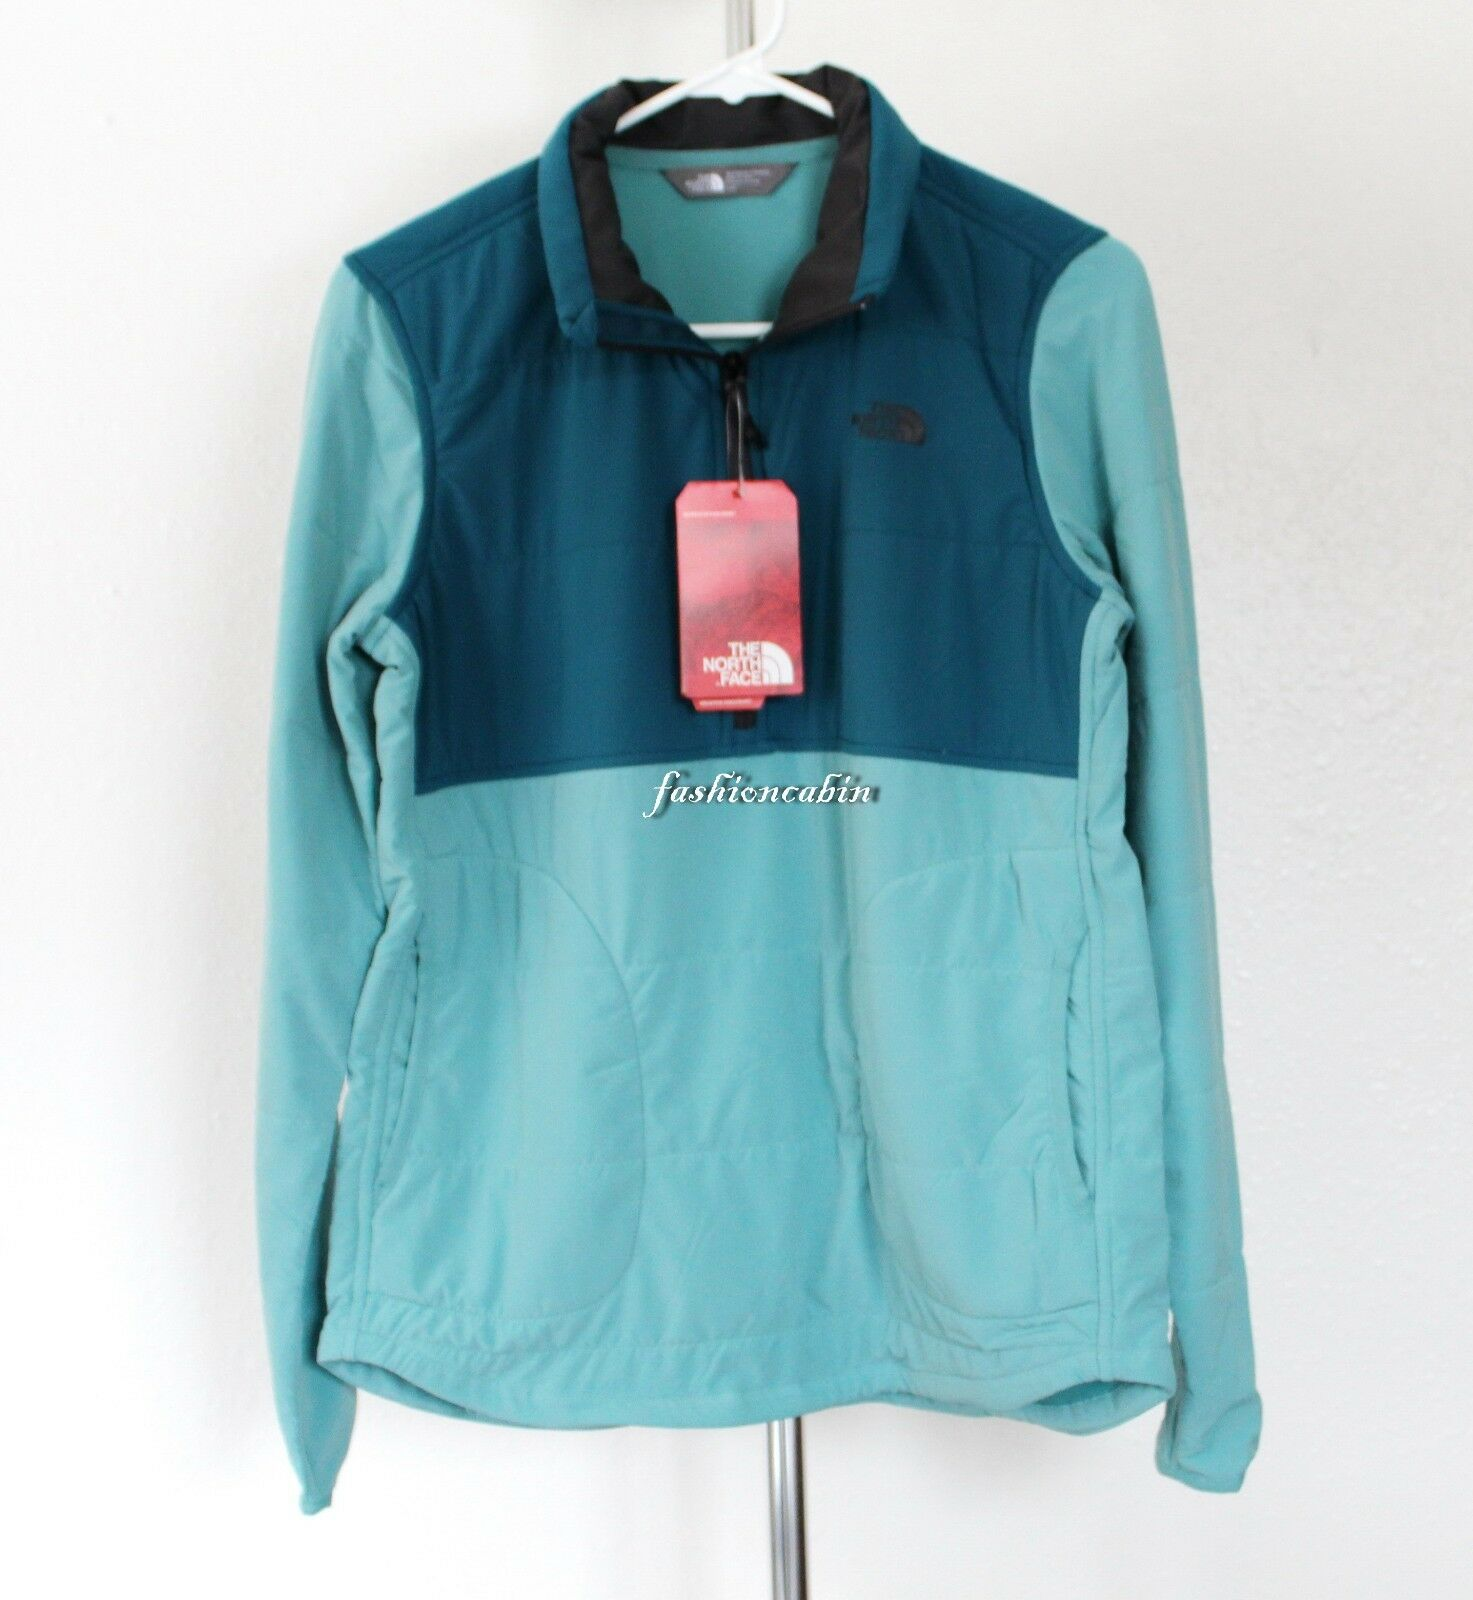 NWT The North Face Mountain Sweatshirt, BRISTOL blueE, Small